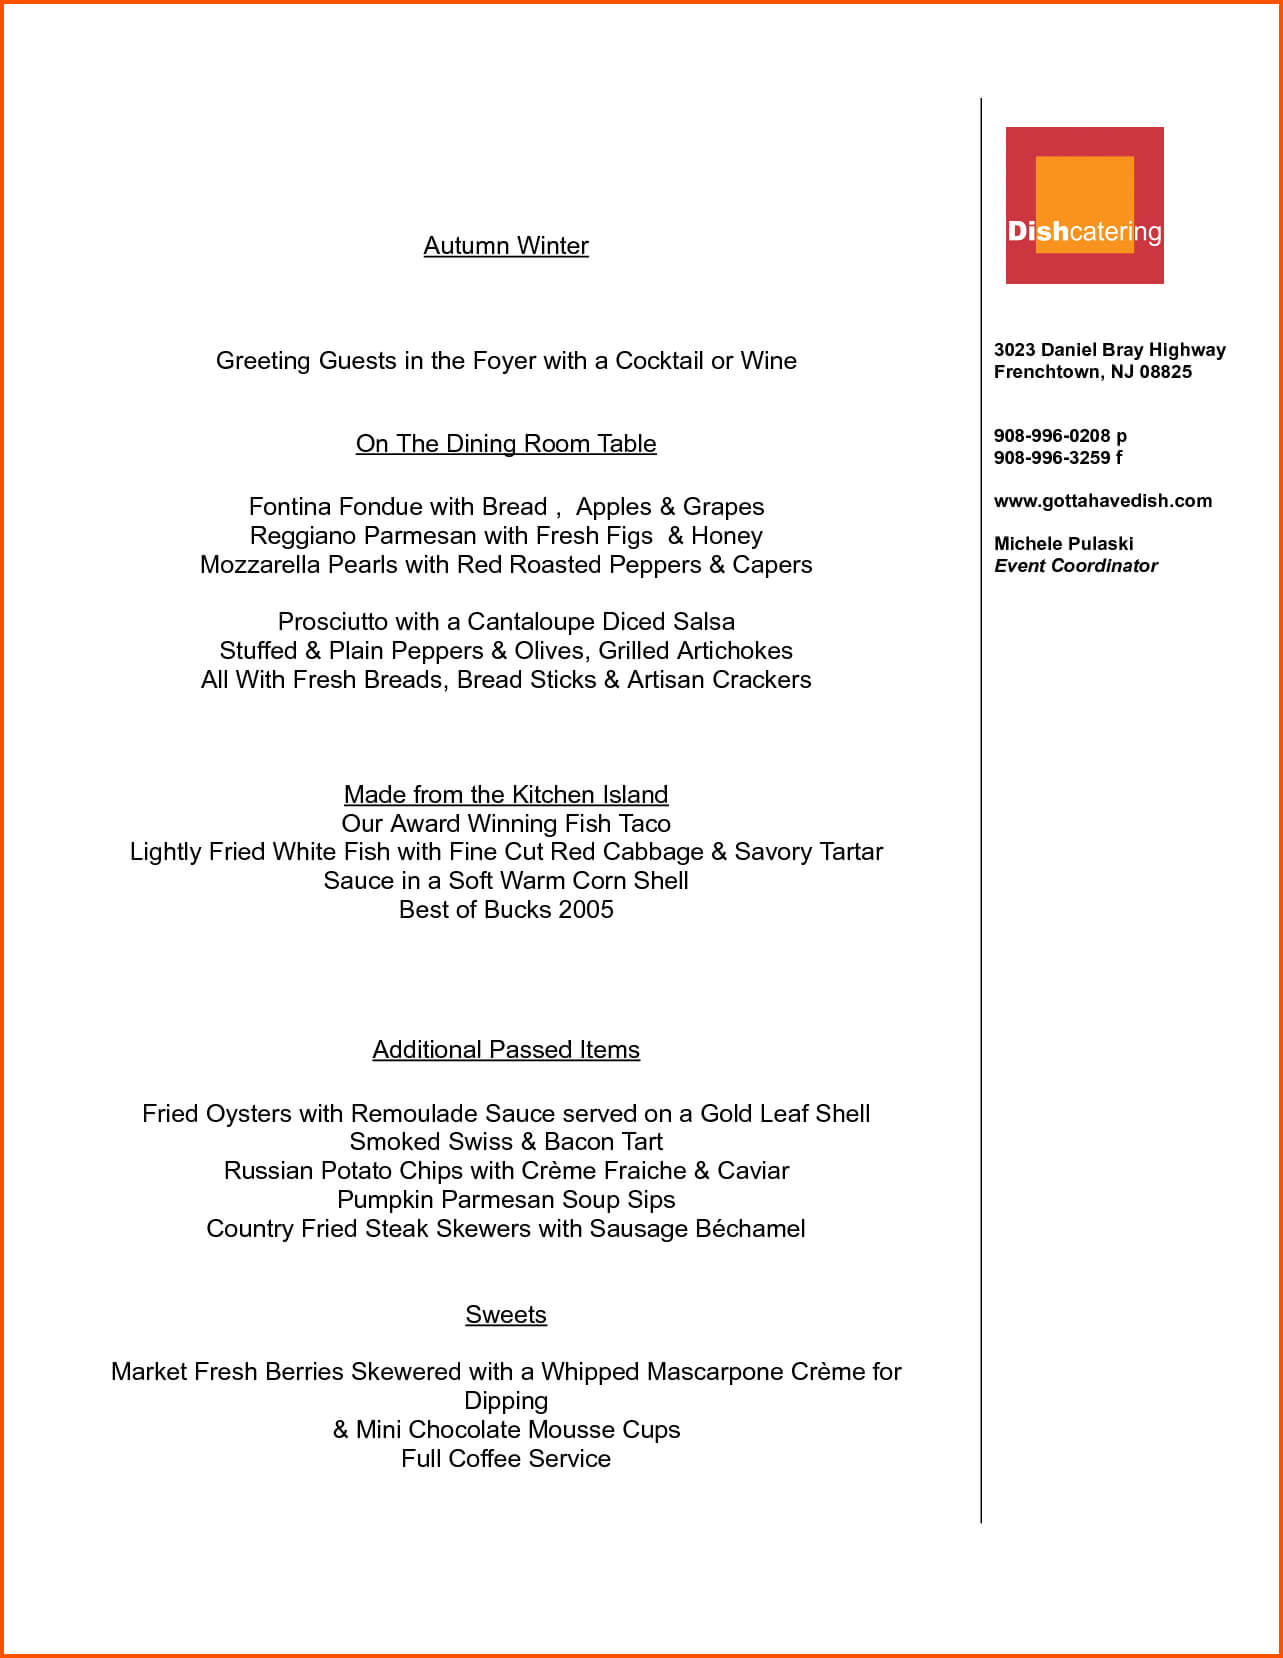 046 Cocktail Menu Template Word Free For Exceptional Ideas For Cocktail Menu Template Word Free